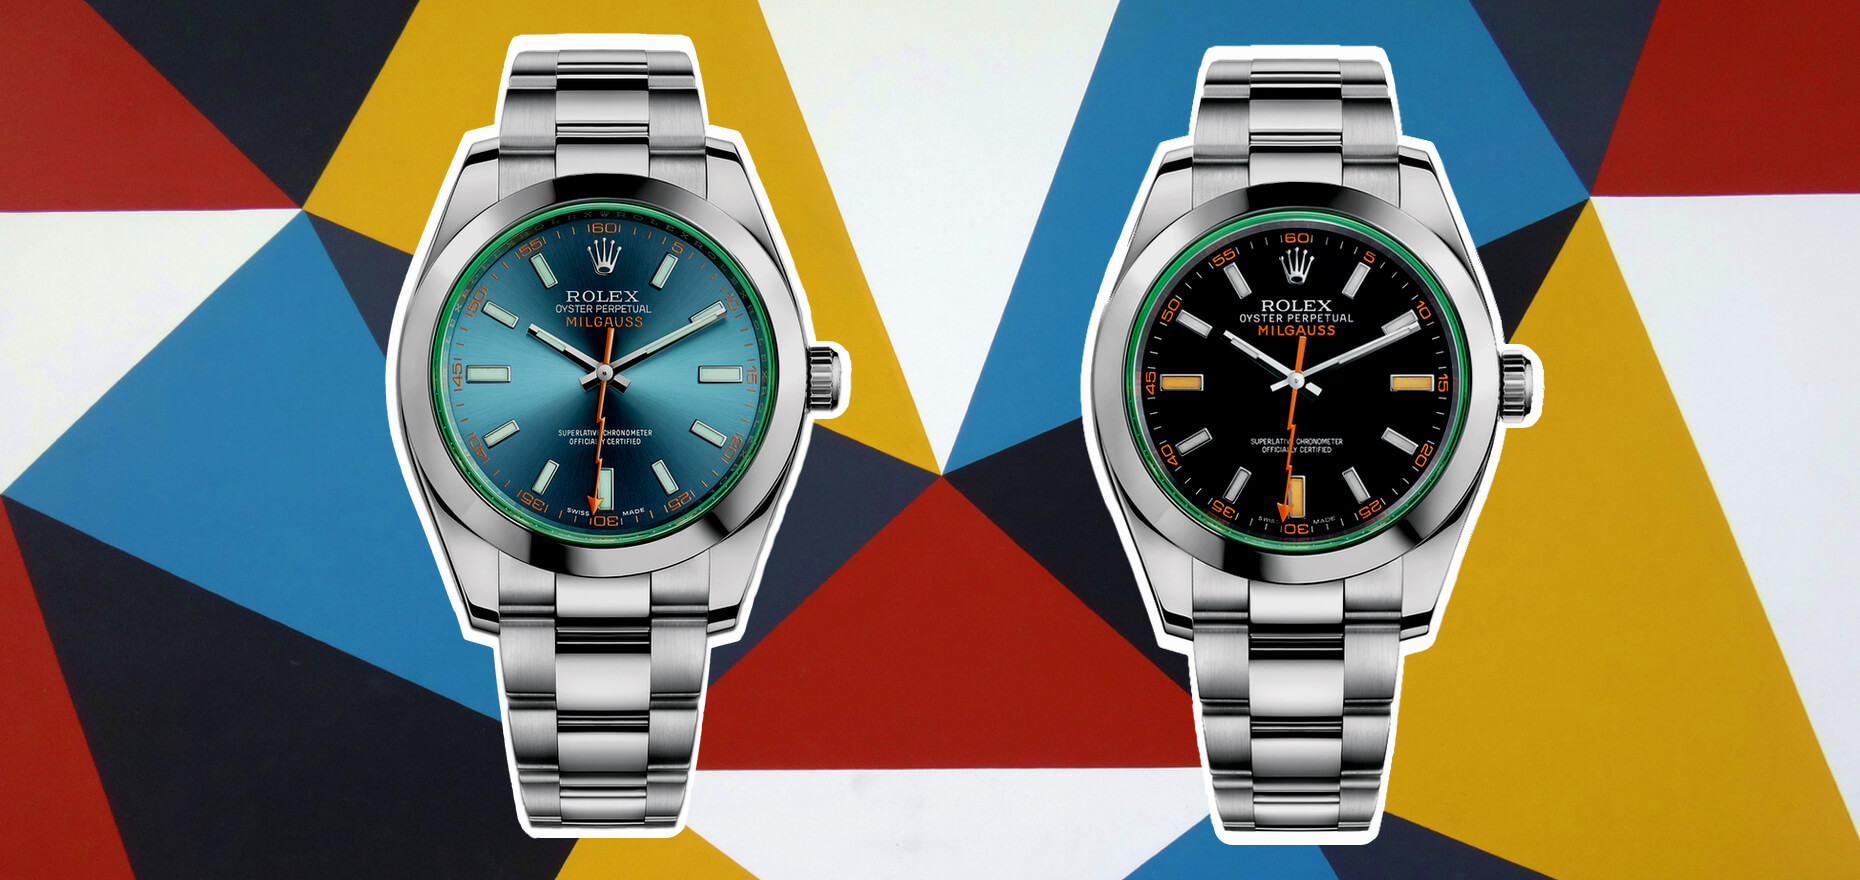 Rolex Milgauss: Why the collection falls short of its potential